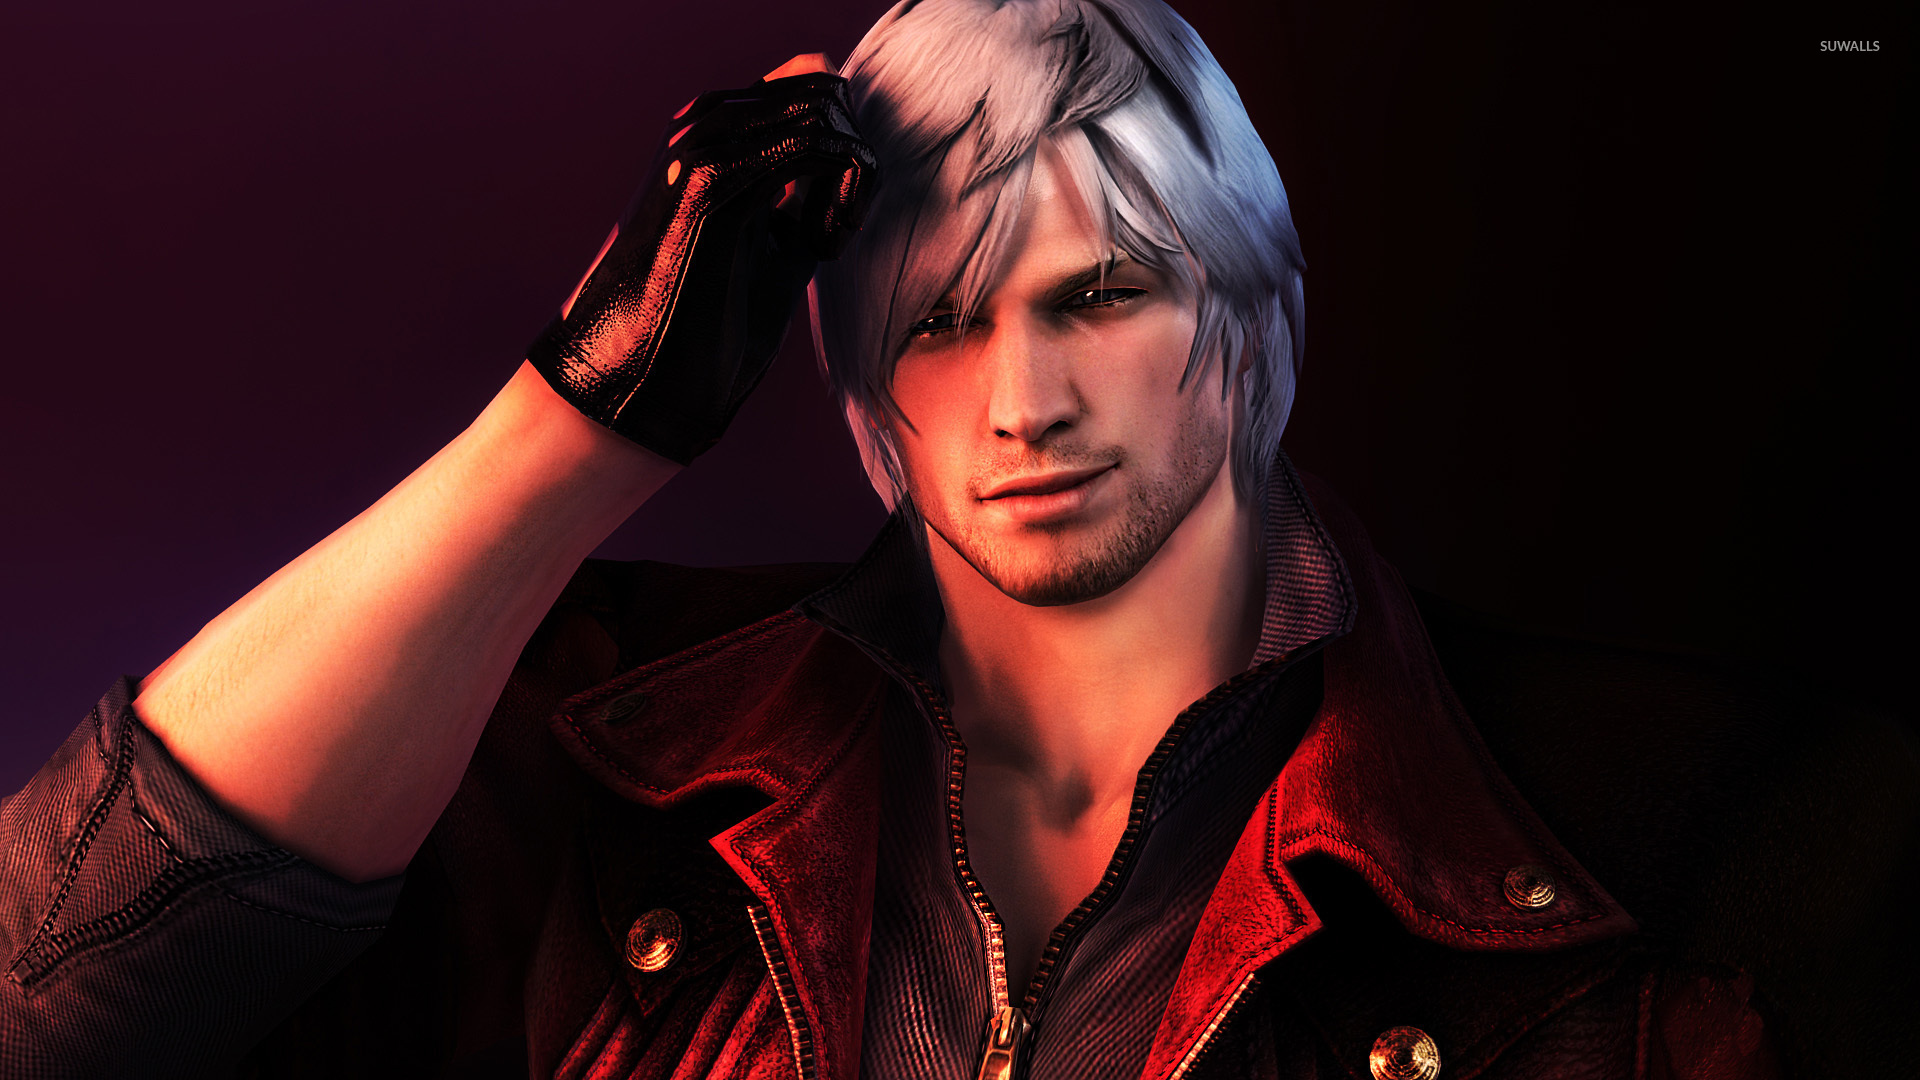 Dante Devil May Cry Wallpaper Game Wallpapers 20041